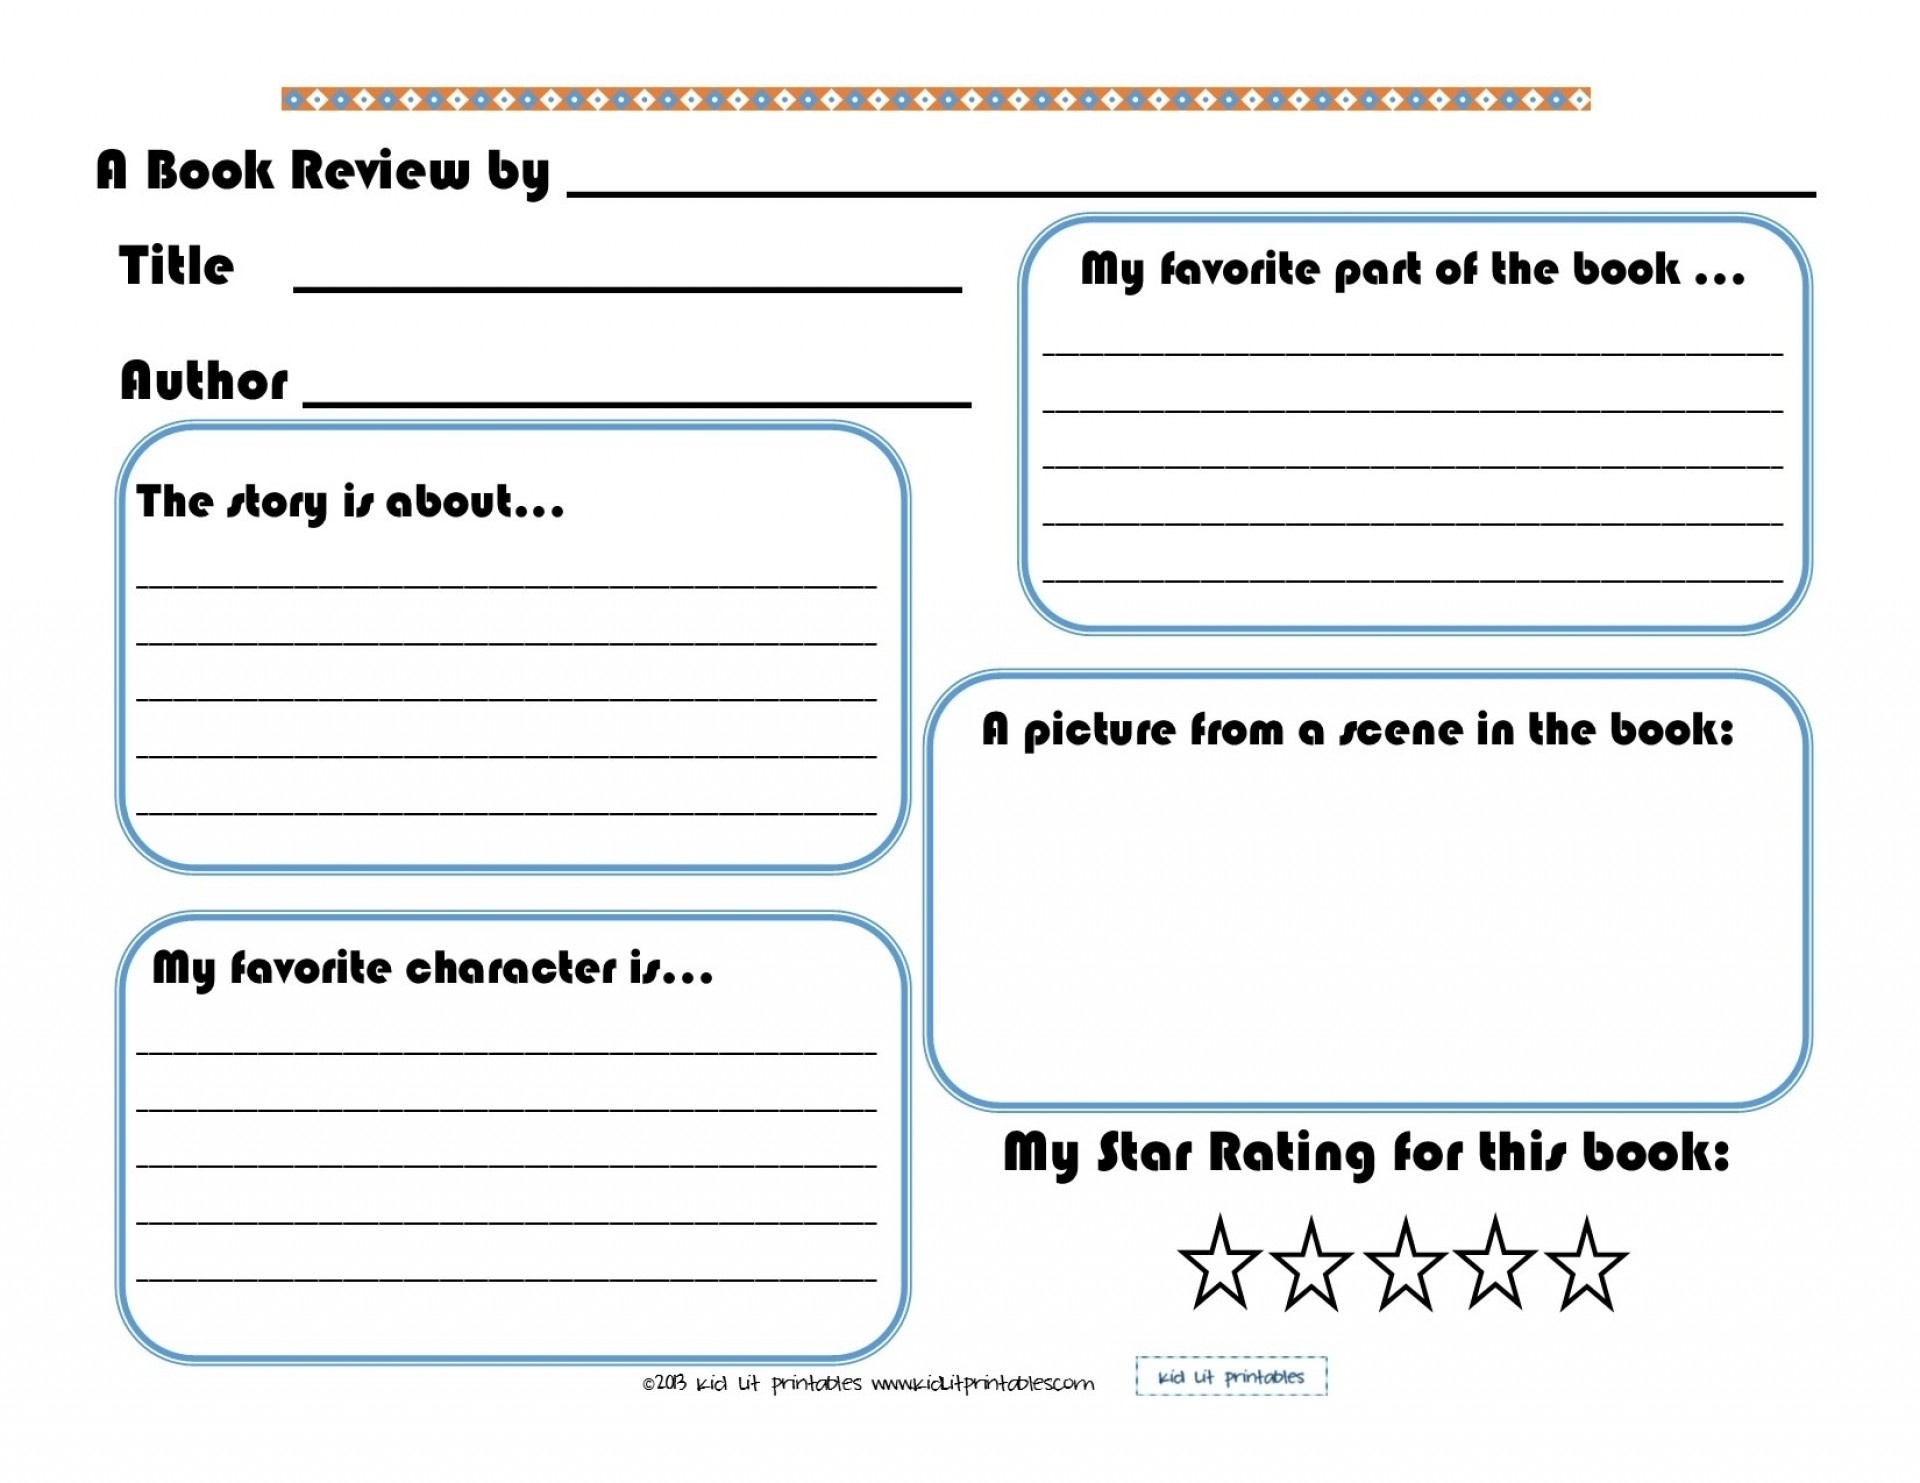 009 Best Images Of Printable Elementary Book Report Forms Pertaining - Free Printable Book Report Forms For Elementary Students